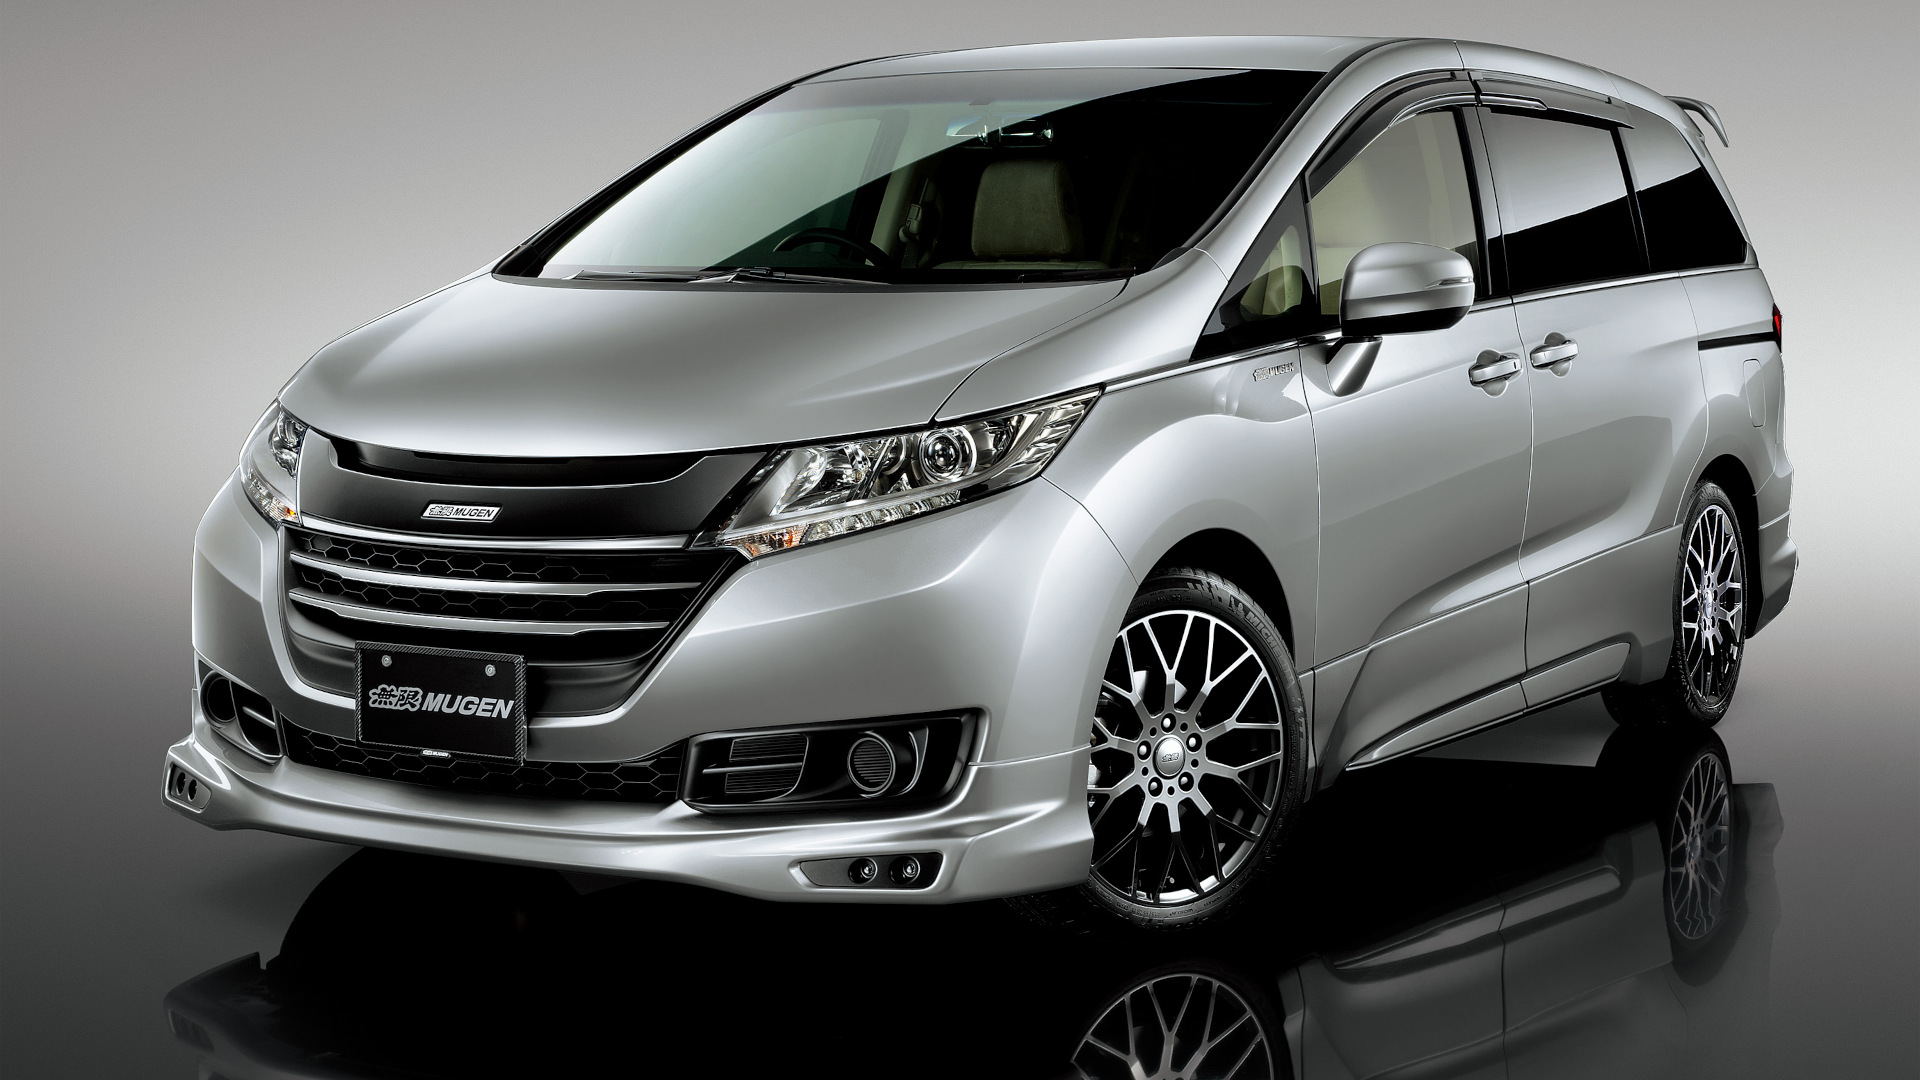 The Honda Odyssey with Mugen Kits - Silver, Front Angle